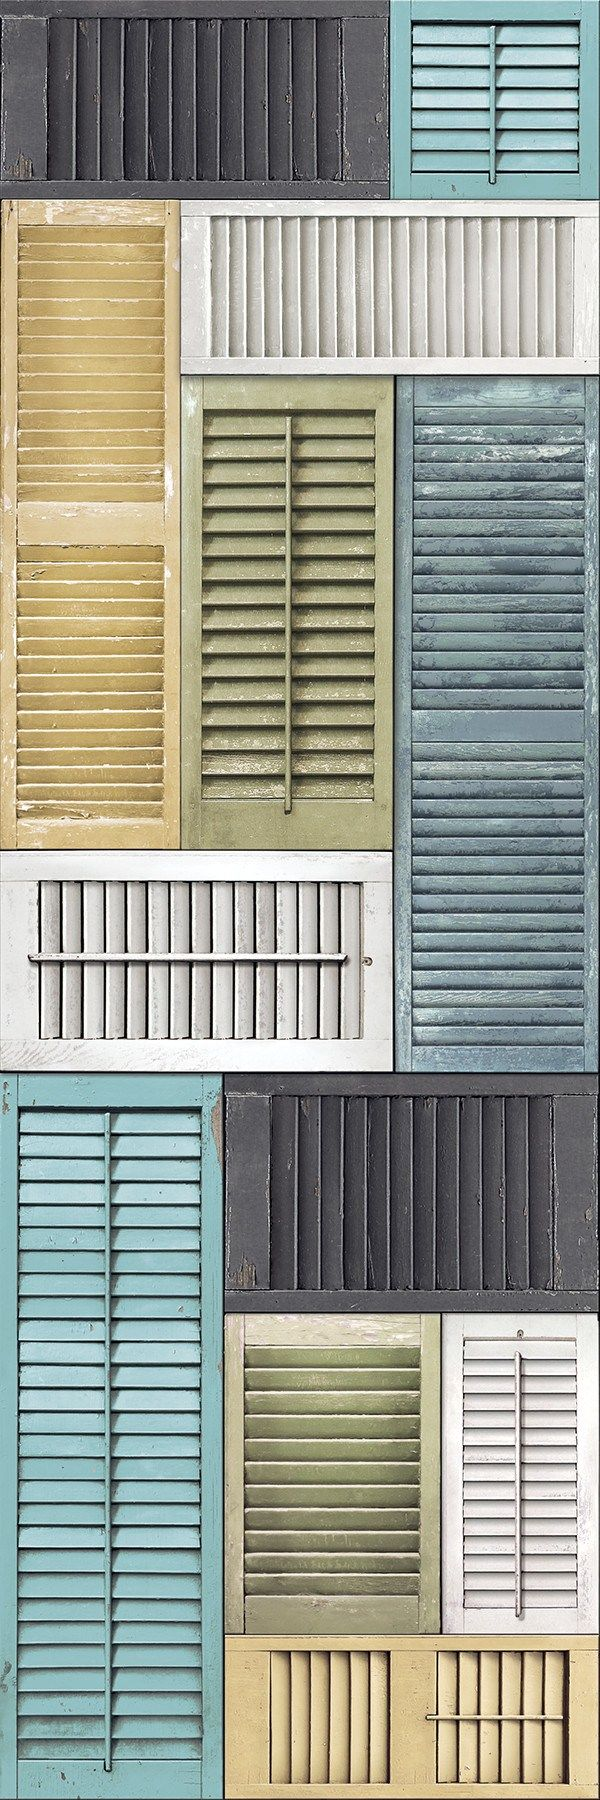 This stunning wall mural gives the look of a wall full of vintage shutters. Blues, greens, yellows, and whites make for a modern color palette that nods to the past. Peeling paint and worn edges add c